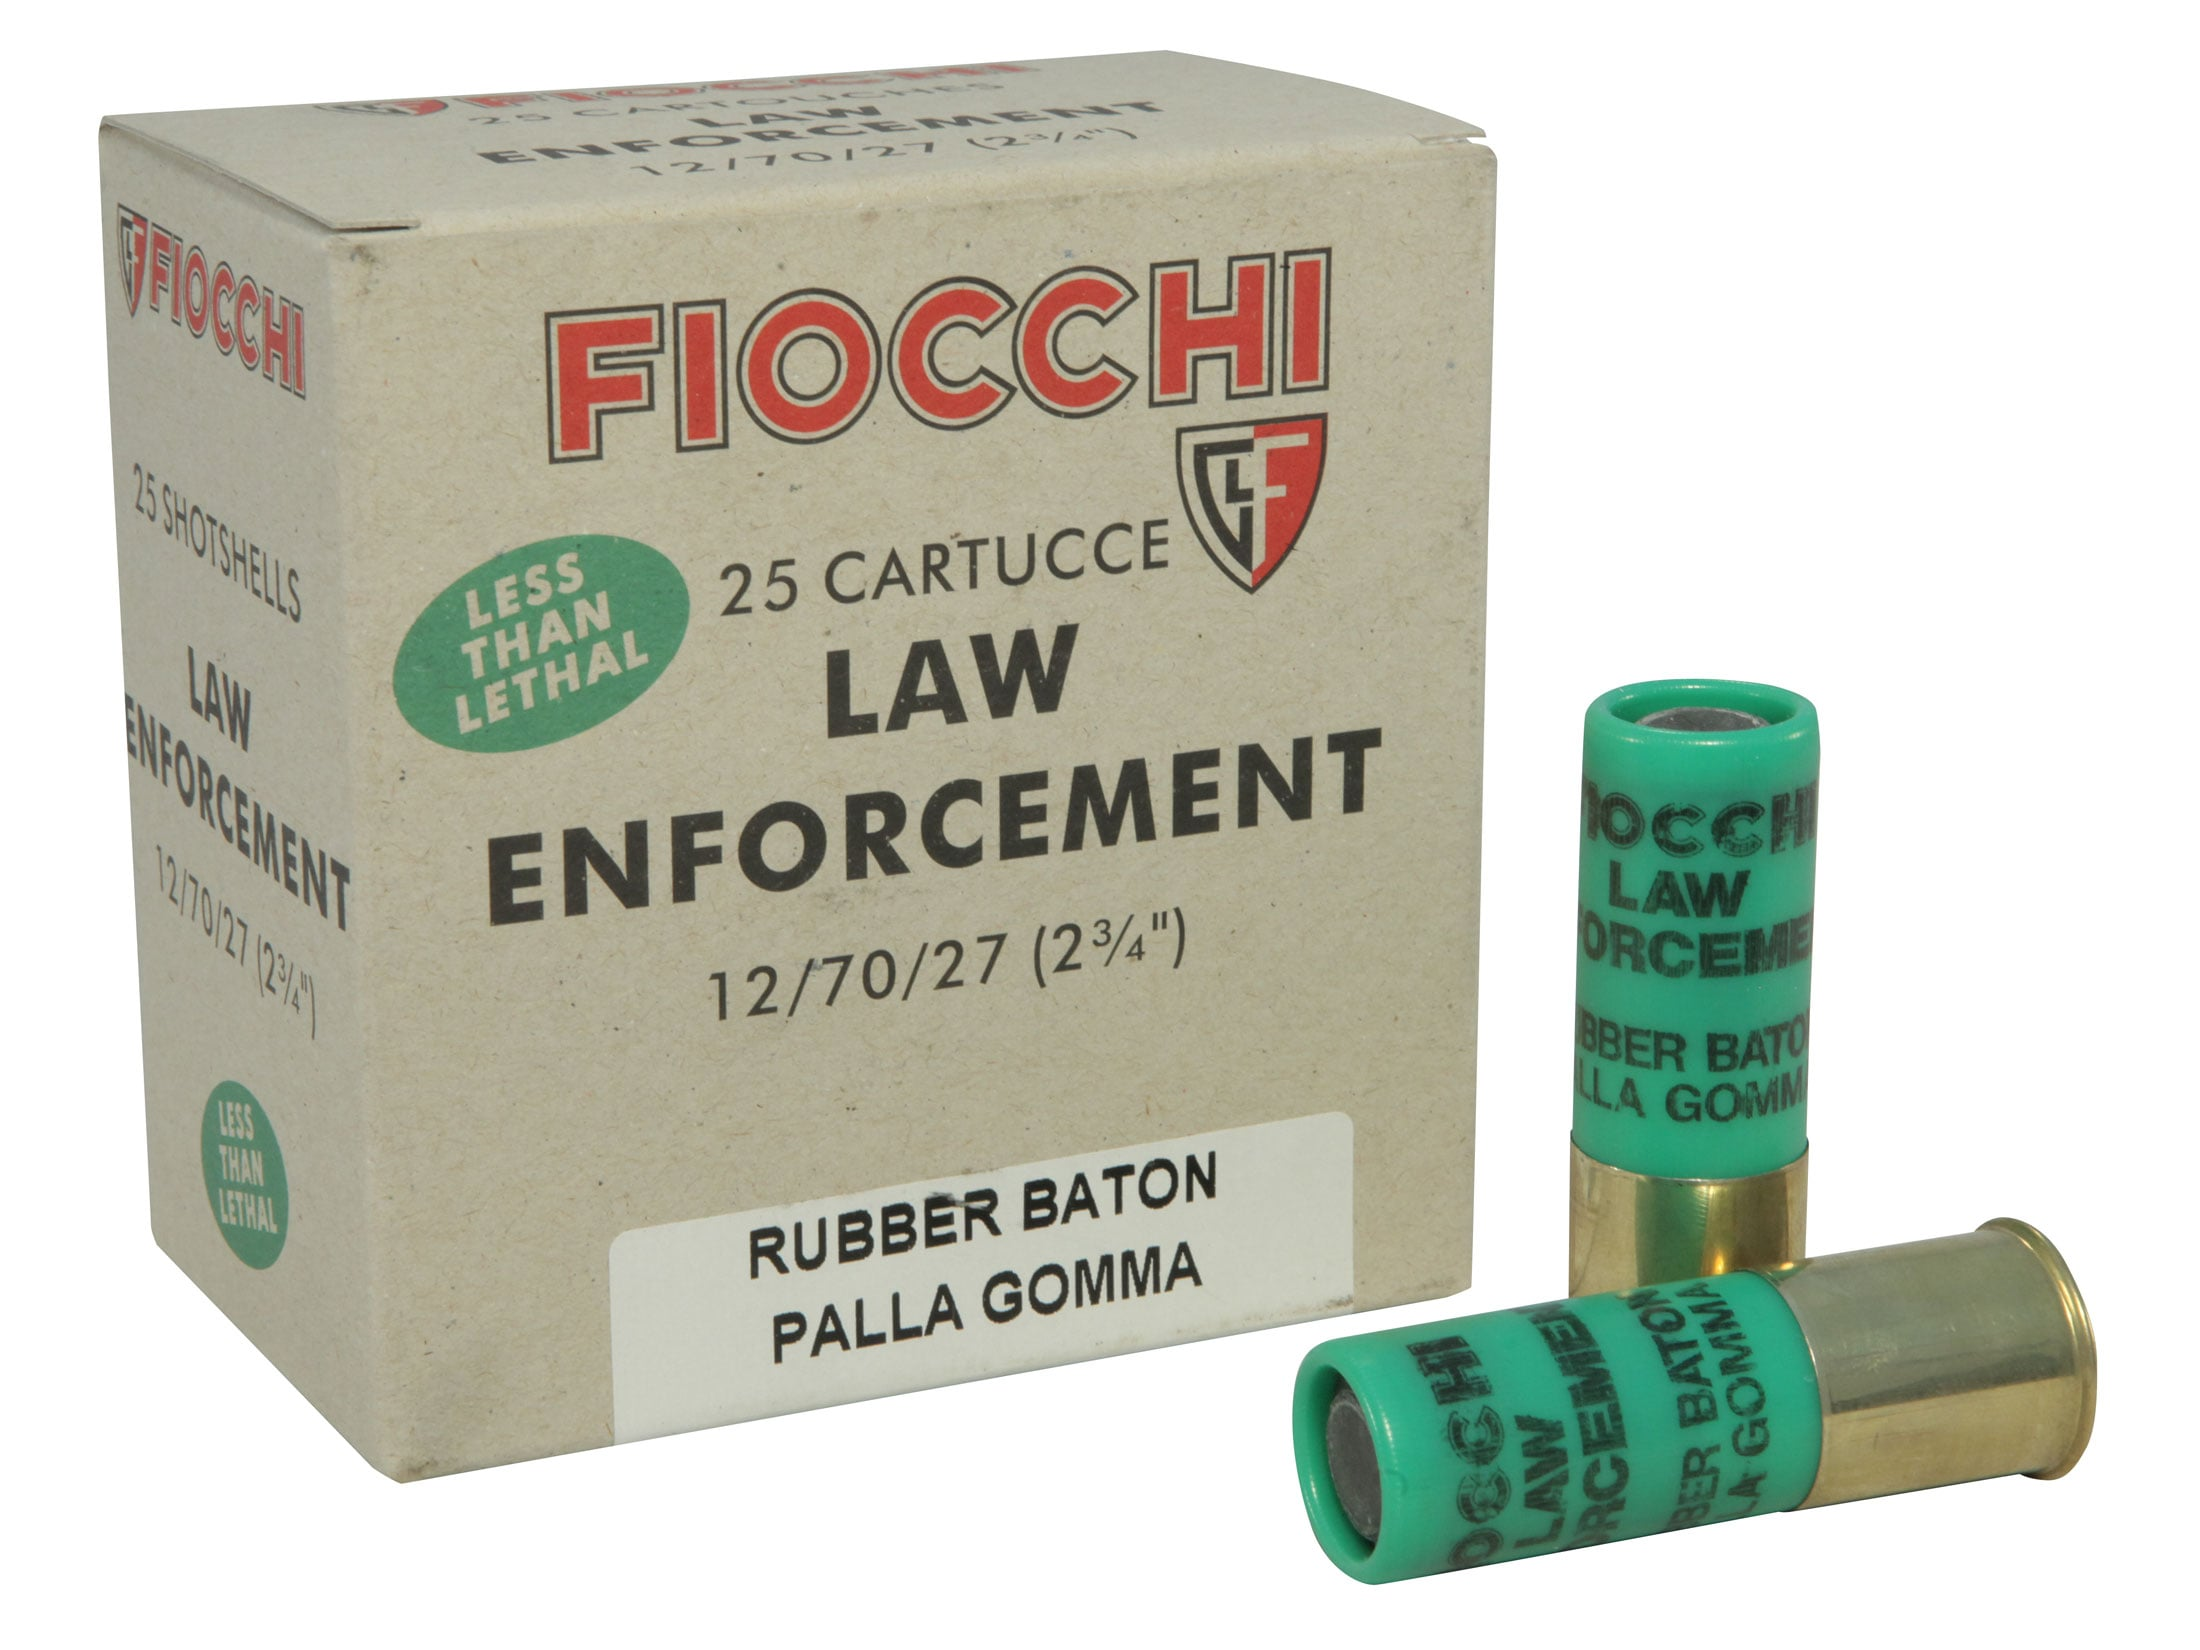 Stupendous Fiocchi Less Lethal Ammo 12 Ga 2 3 4 4 8 Gram Rubber Baton Slug Box Of Caraccident5 Cool Chair Designs And Ideas Caraccident5Info